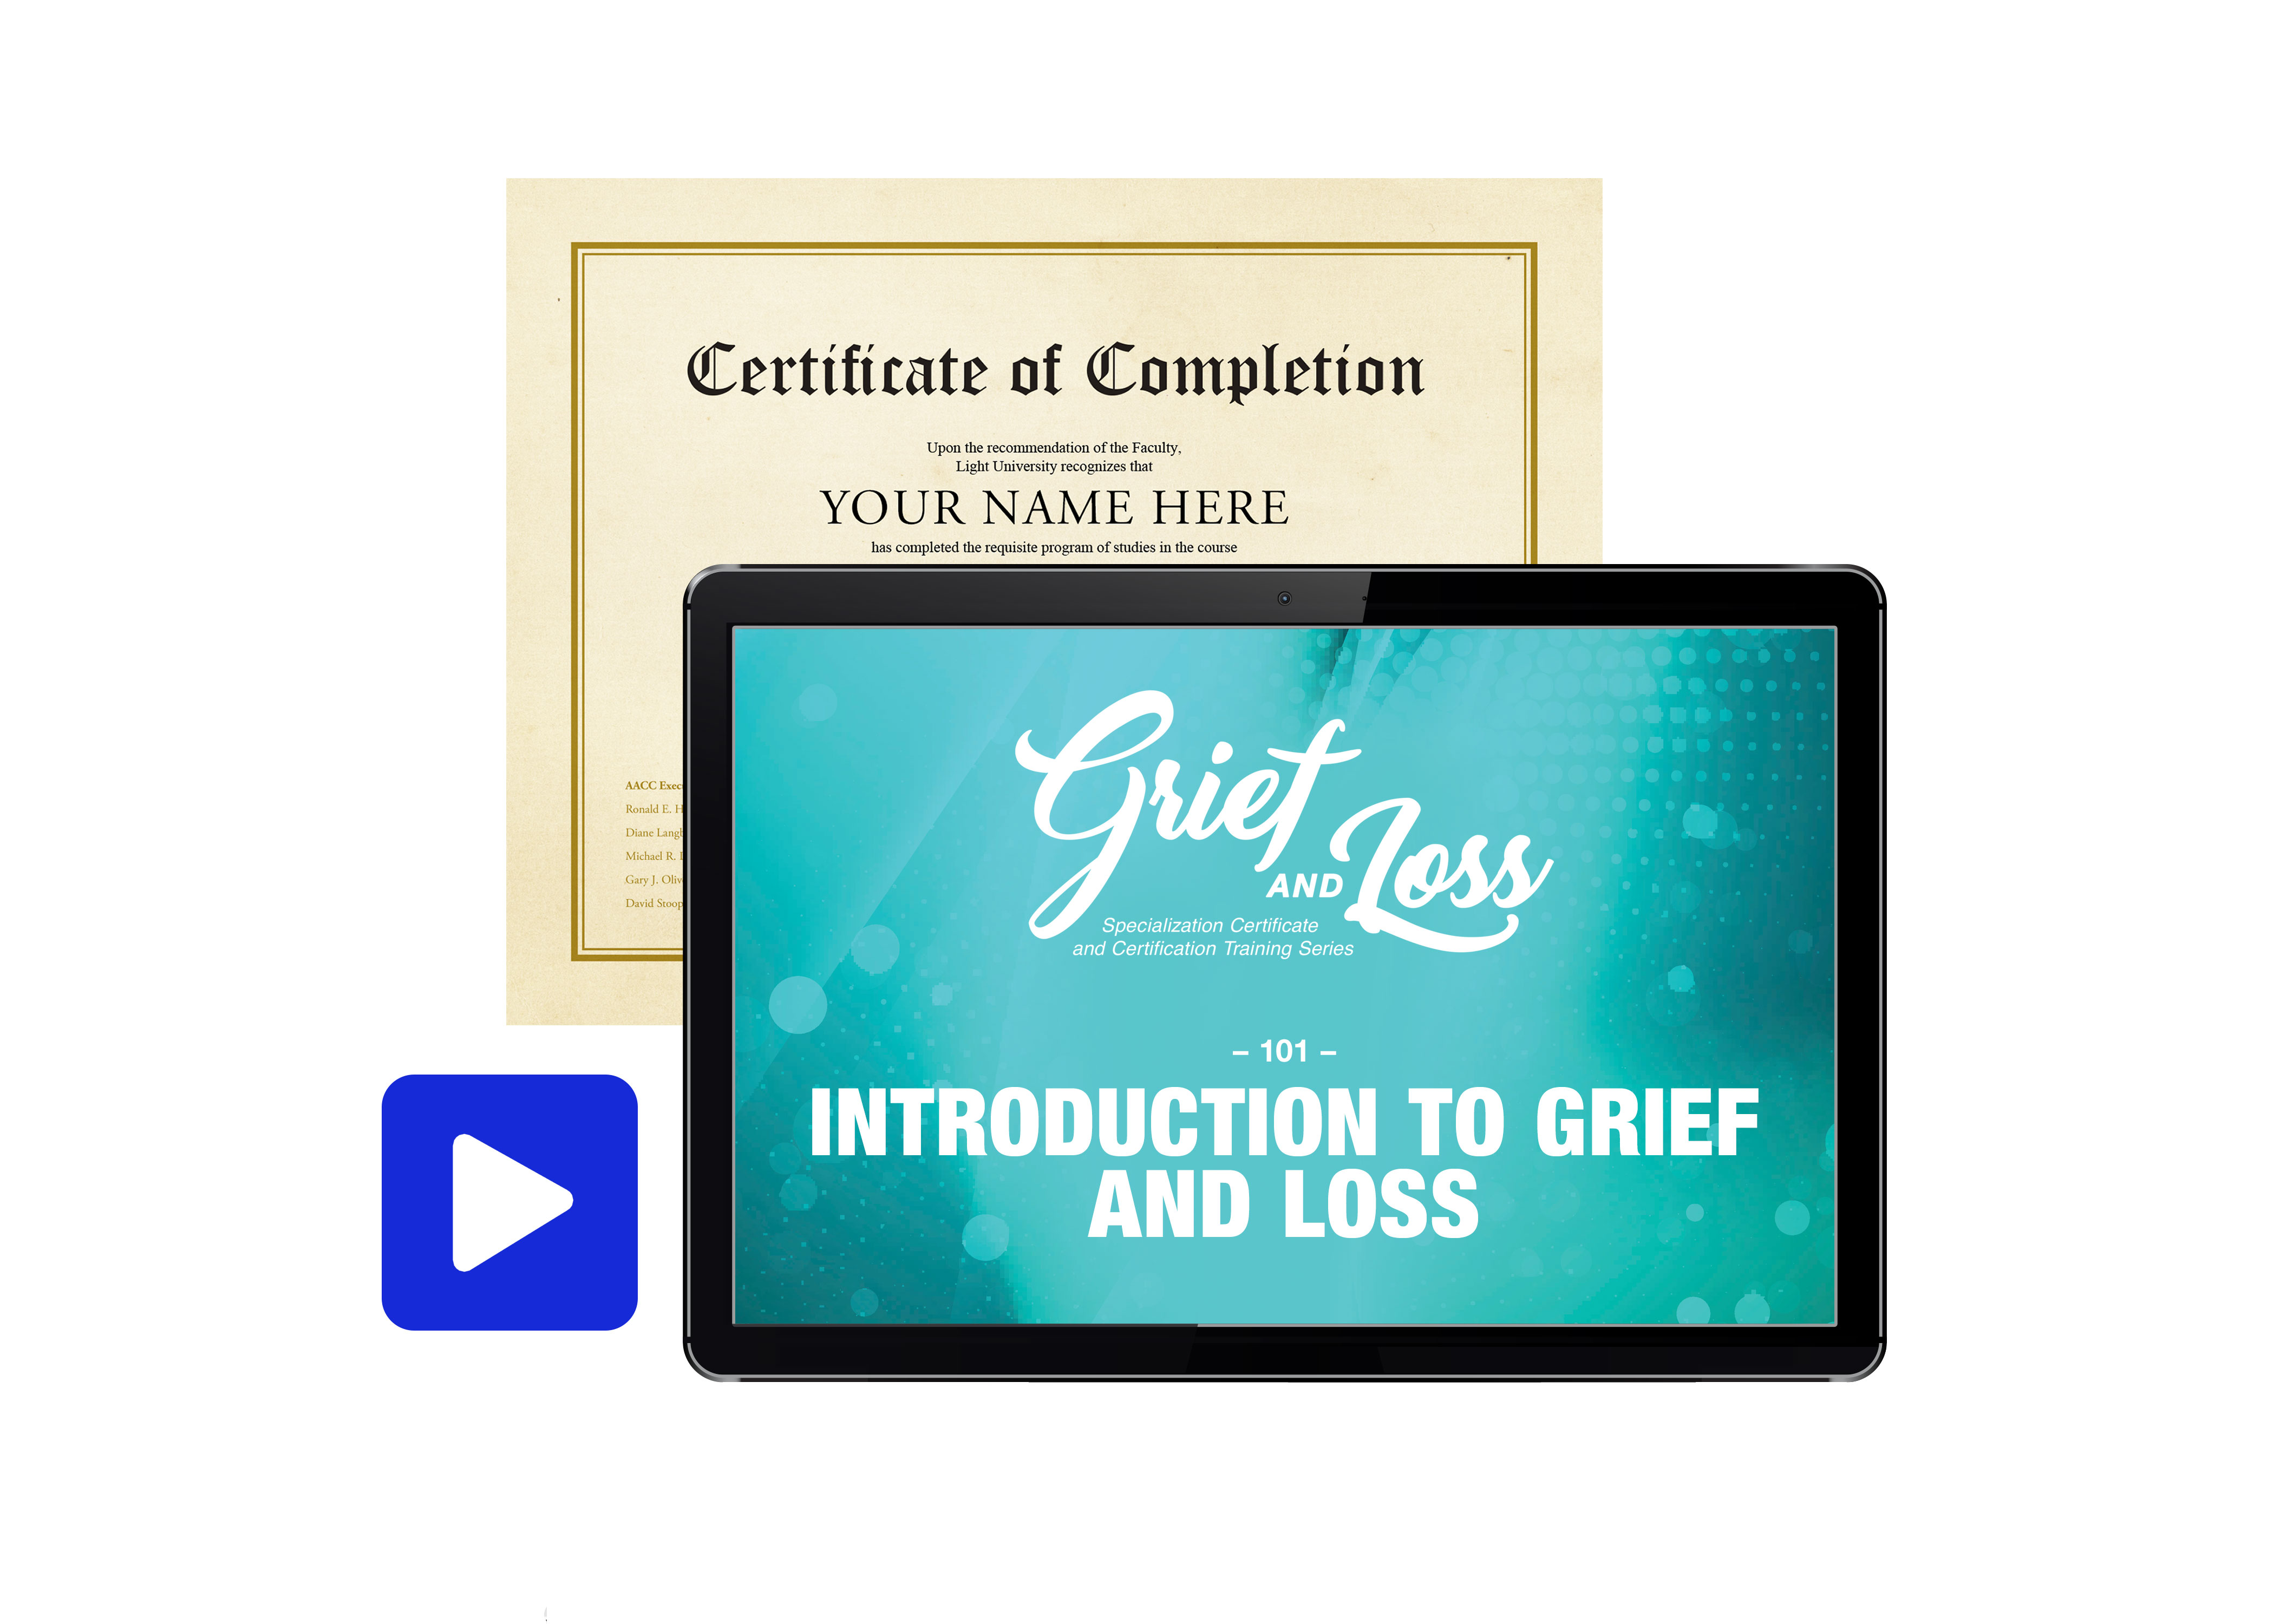 Introduction to Grief and Loss